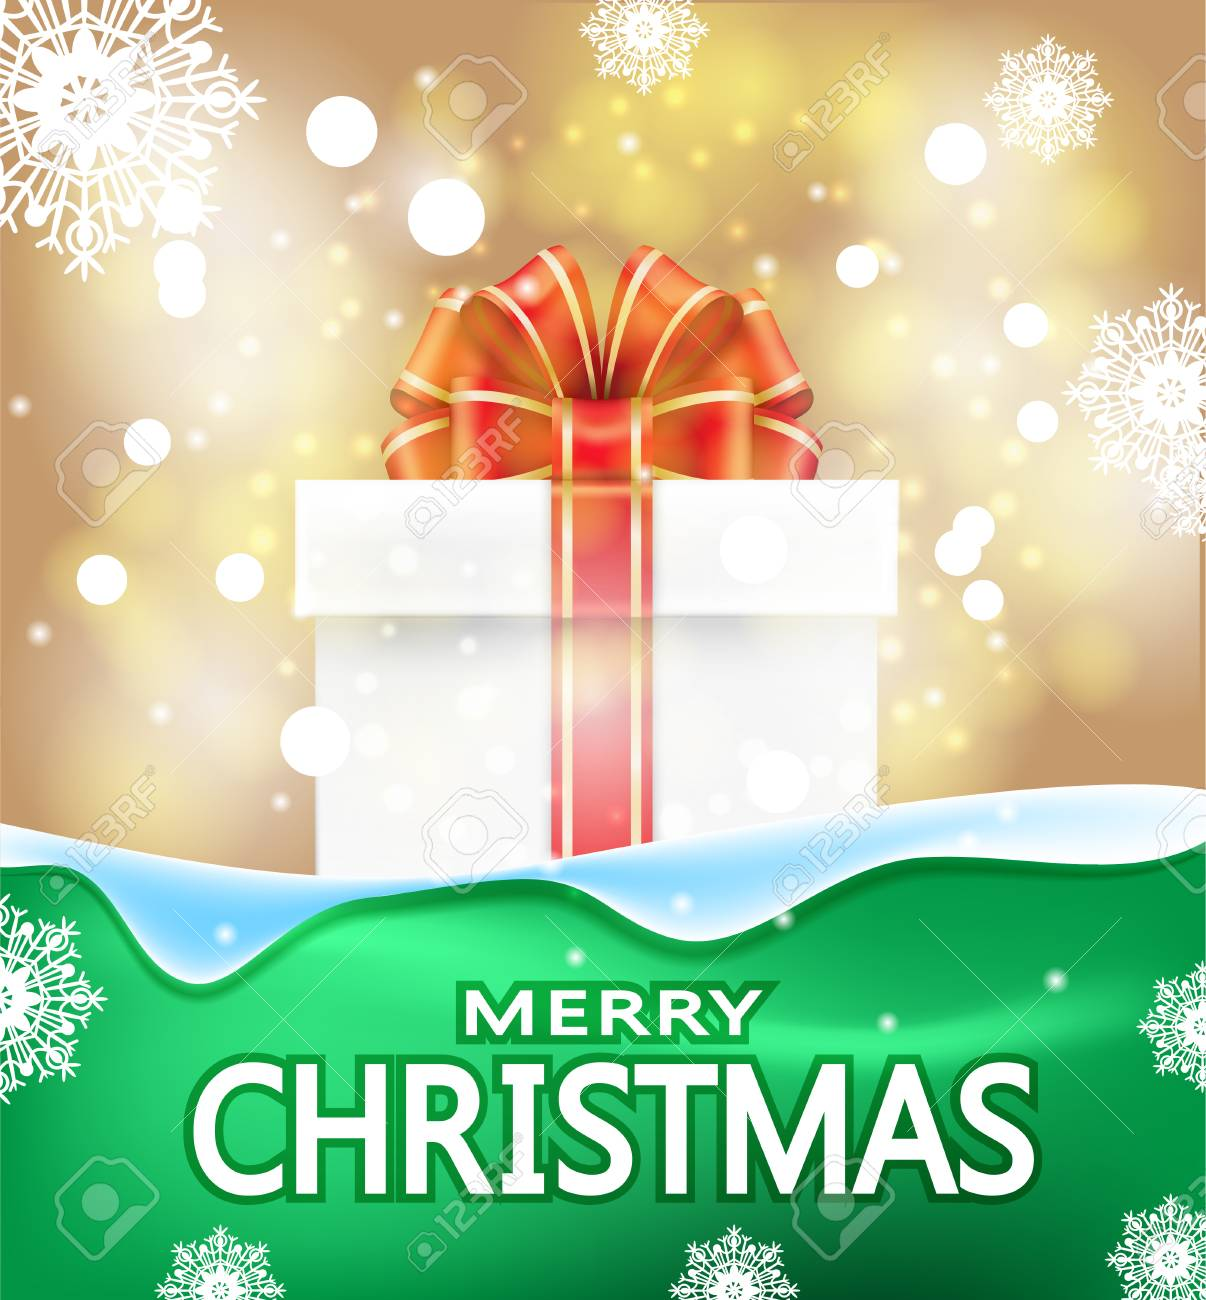 Christmas Background With The Words Merry Christmas. Gift Box ...